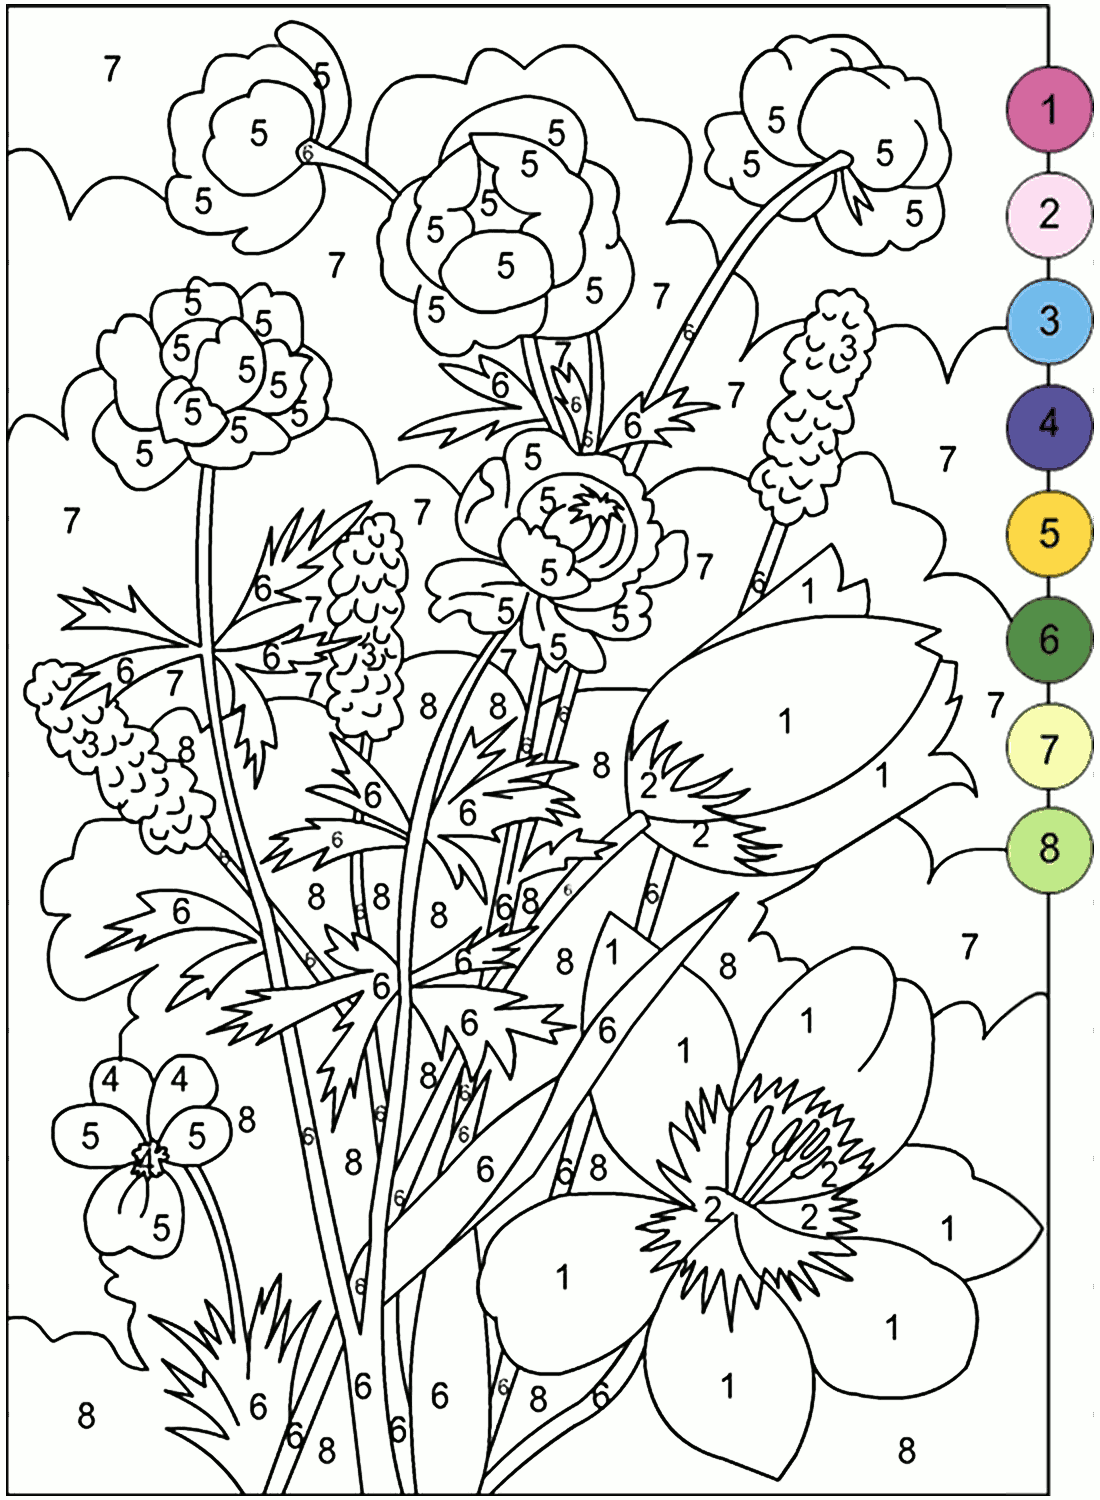 Adult Color by Number Books | AdultcoloringbookZ